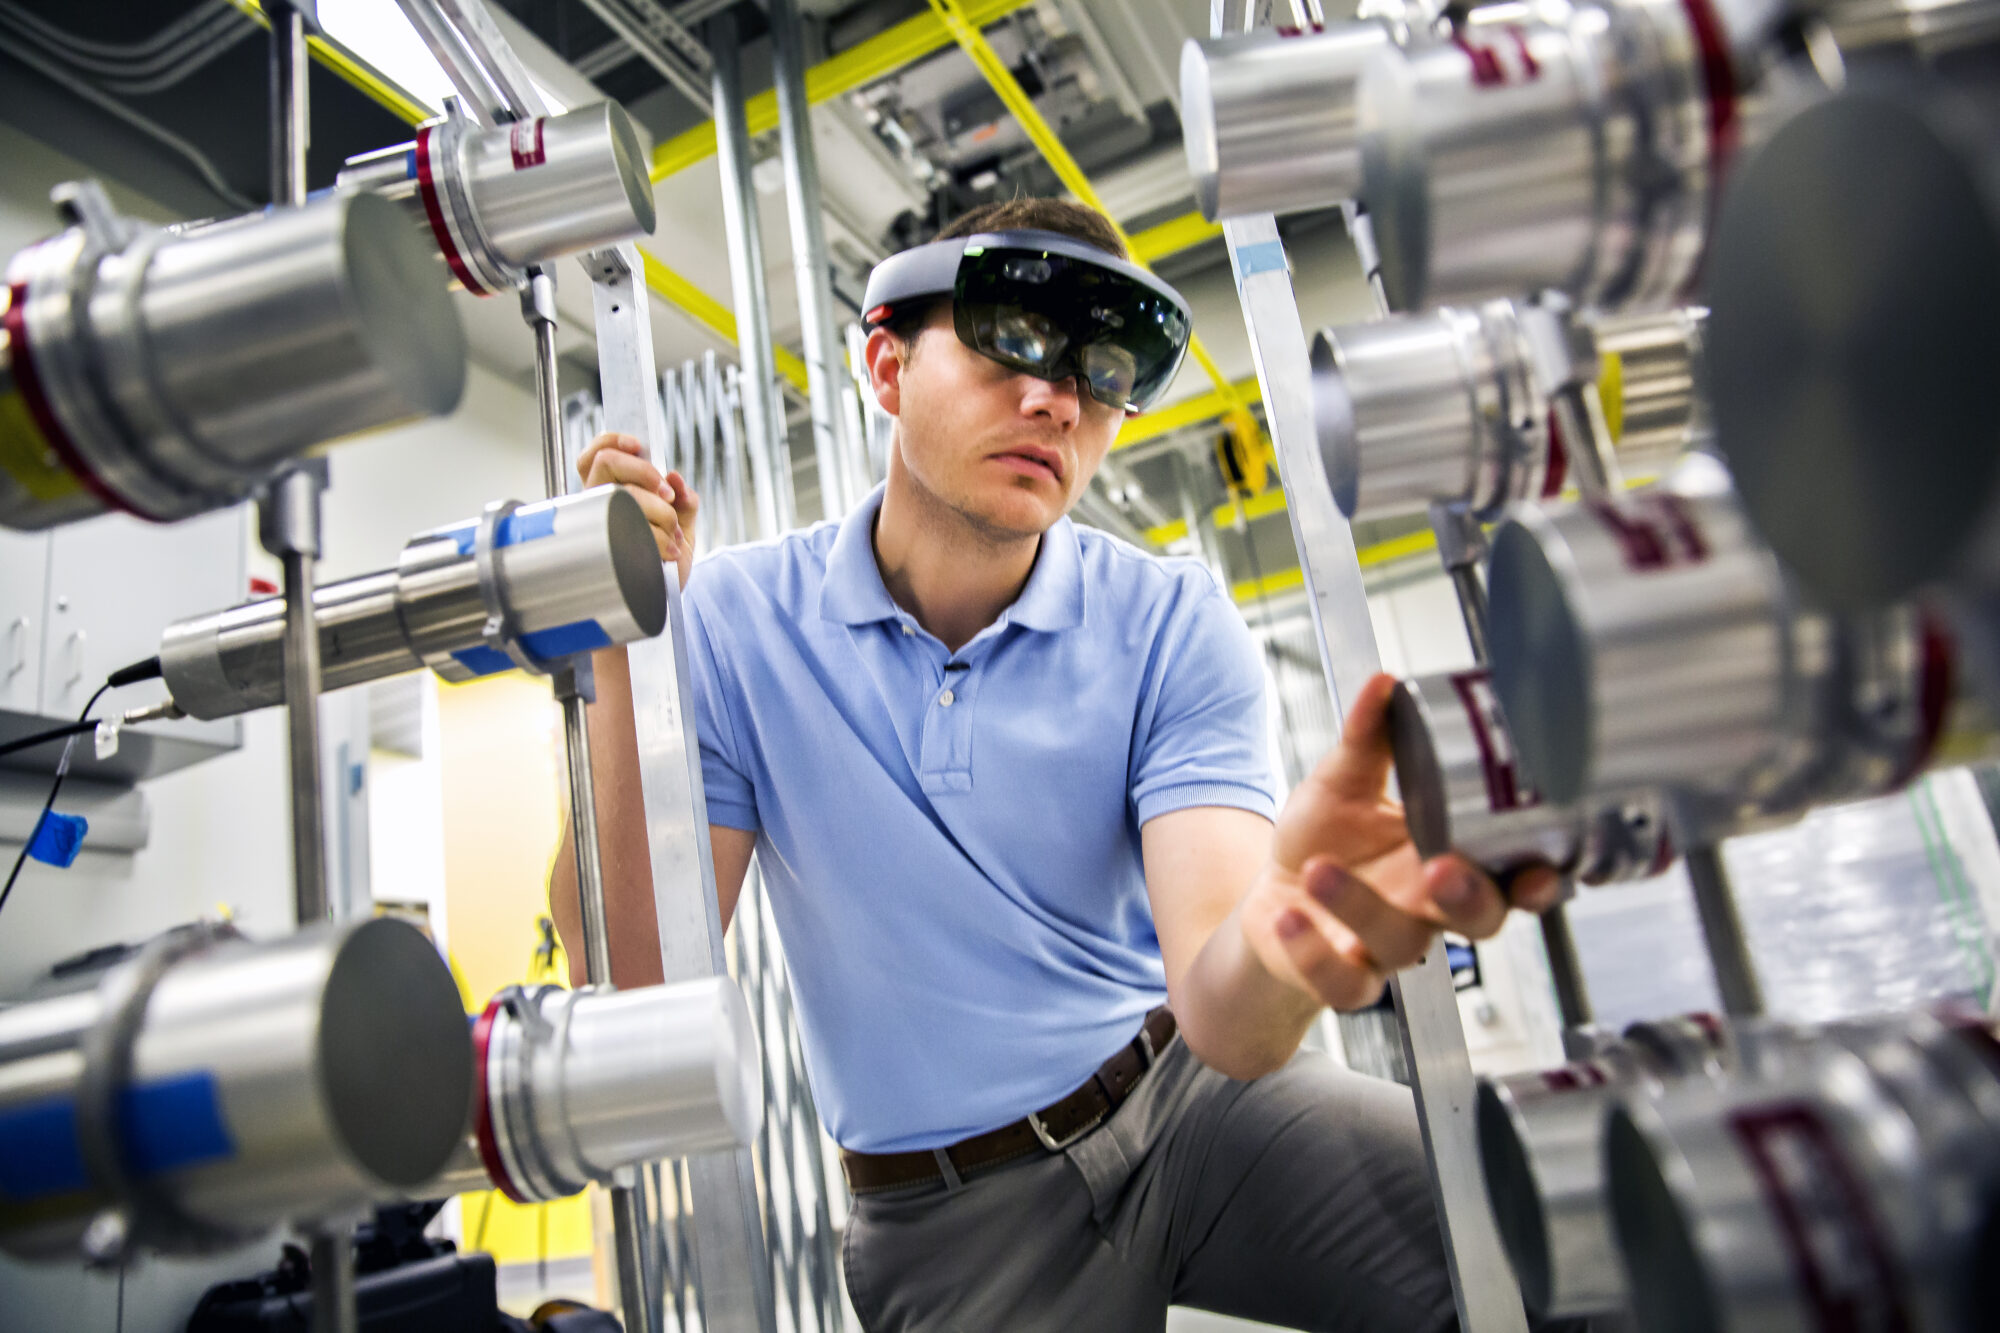 Michael Hamel, NERS Ph.D. Student, uses a Microsoft Hololens headset with a radiation imaging array to demonstrate the use of augmented reality to find nuclear materials hidden in a room. Image credit: Joseph Xu, Michigan Engineering